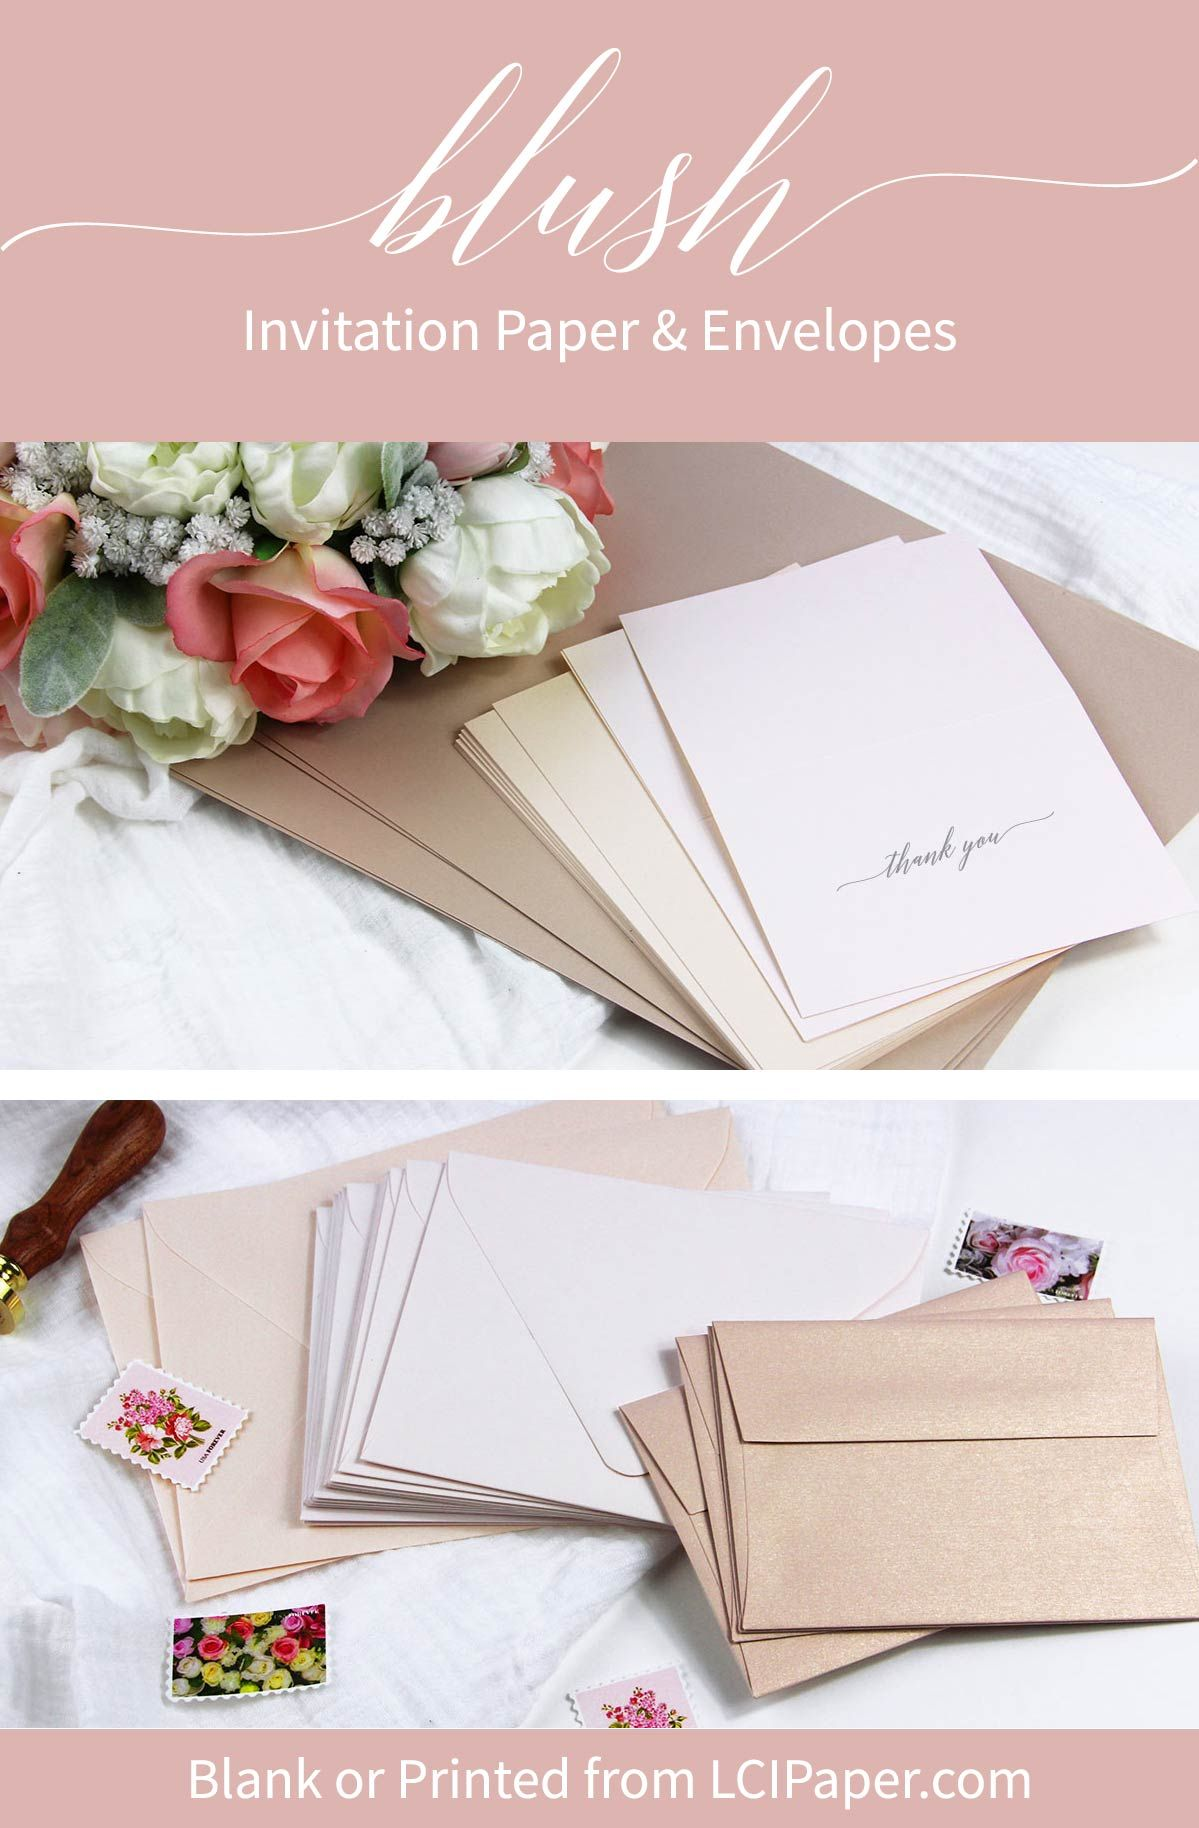 Order blush colored wedding invitation paper and envelopes blank or ...